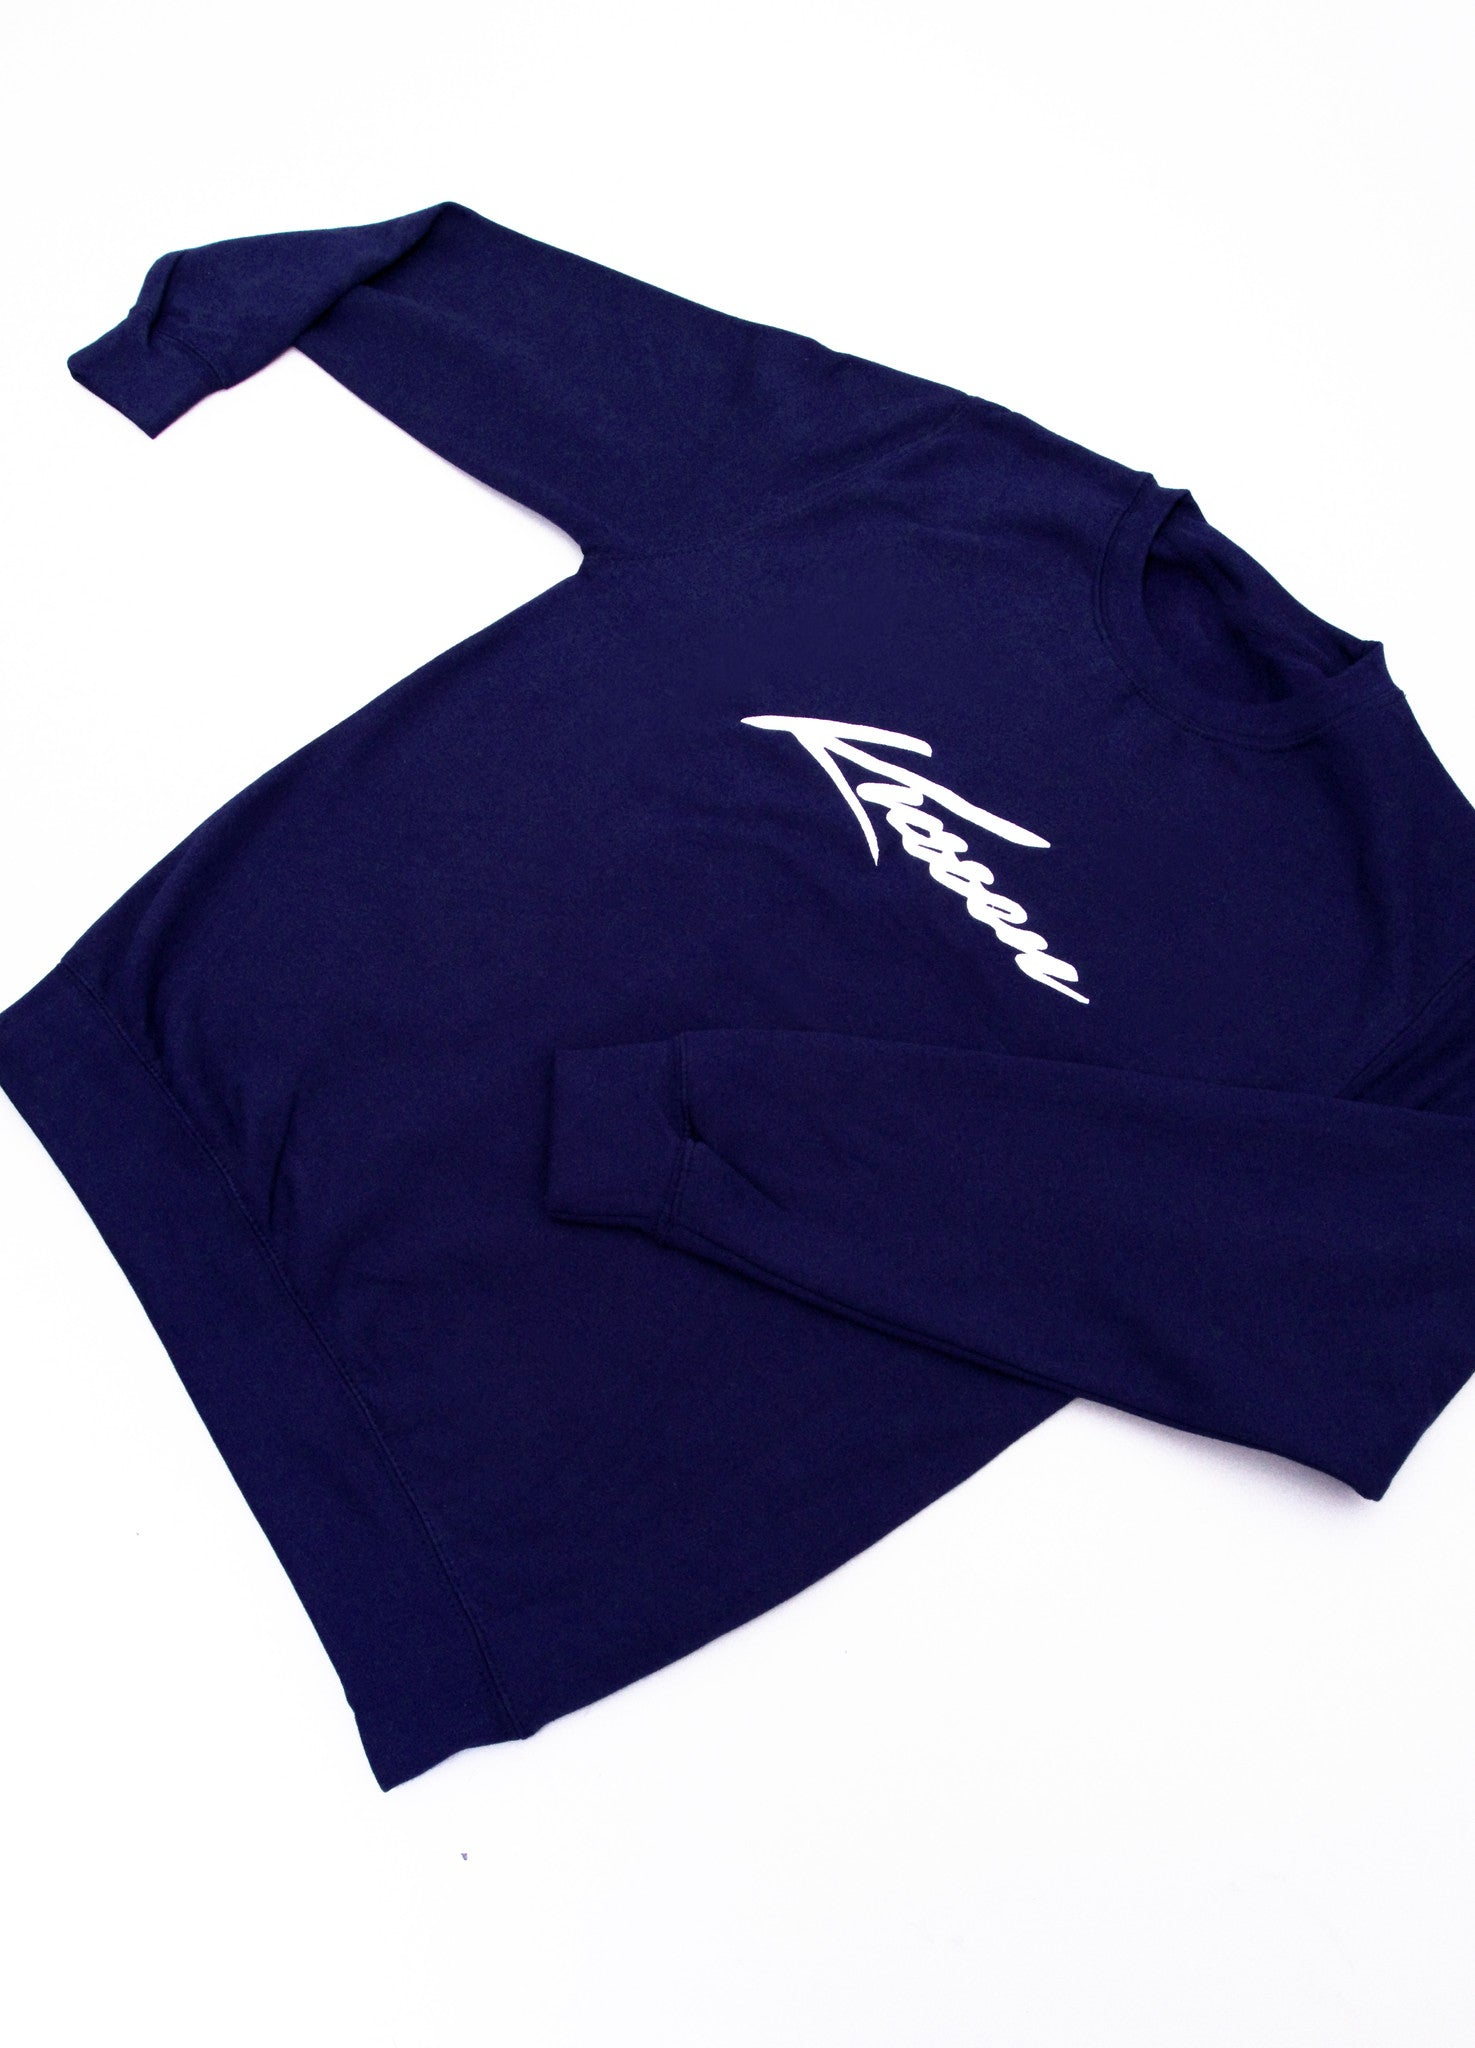 Navy Blue Kussen Signature Sweatshirt